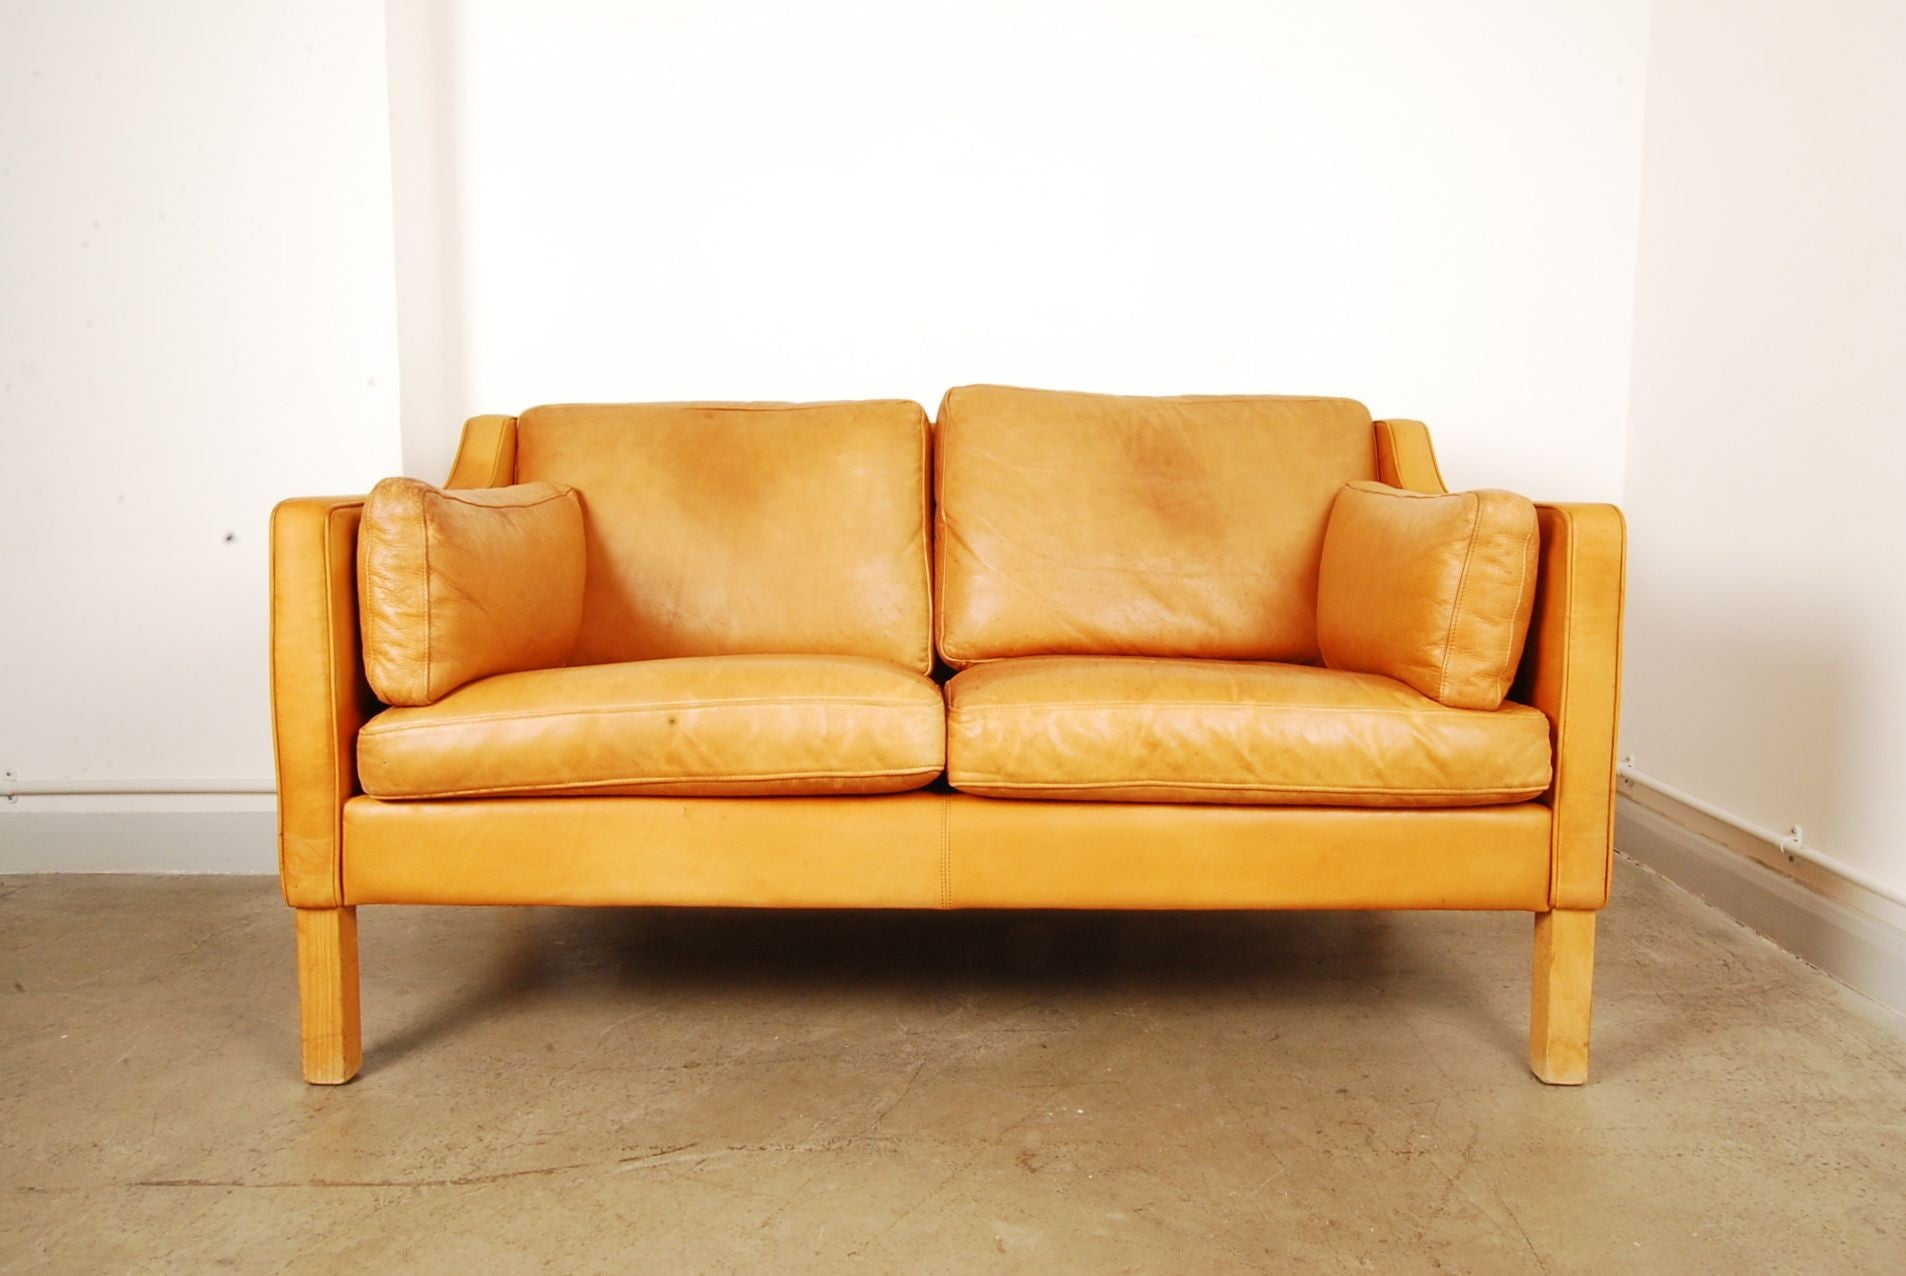 Tan two seat leather sofa